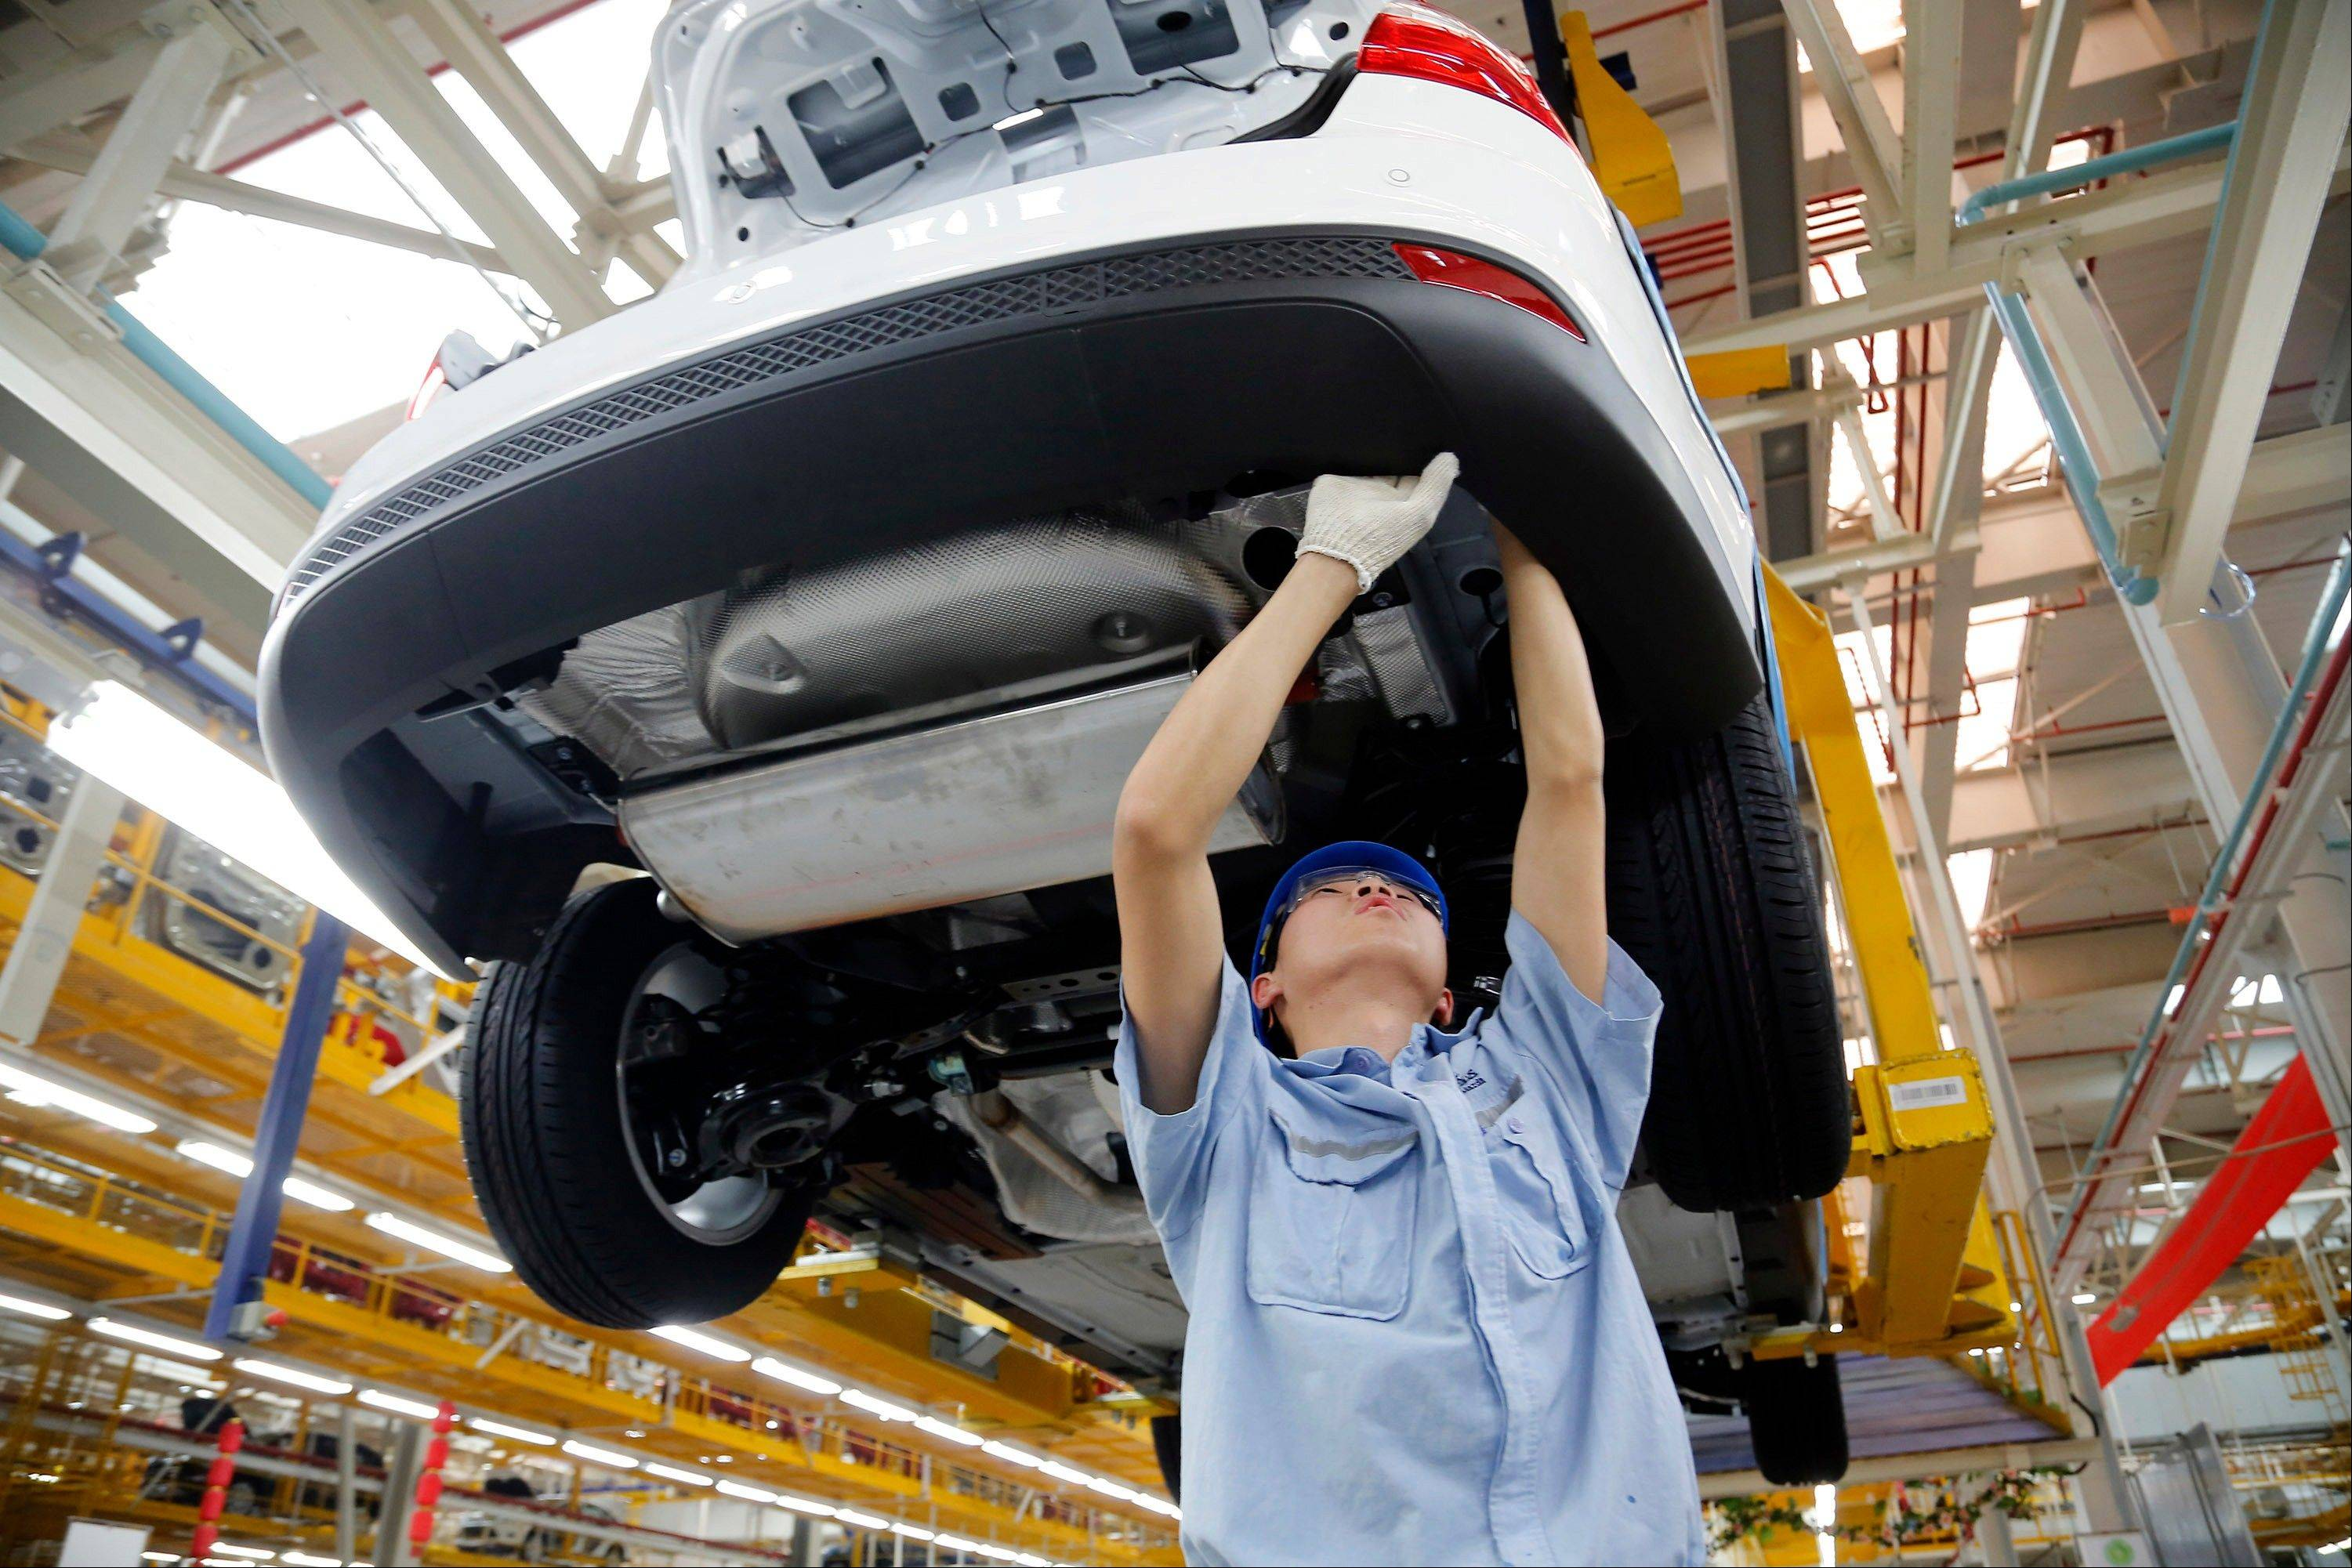 Associated Press/April 16A worker assembles a vehicle on an assembly line at a Ford factory in Chongqing, China. China's economy expanded 7.7 percent in the first three months of the year compared with a year earlier and that was a slowdown from its previous double-digit growth.